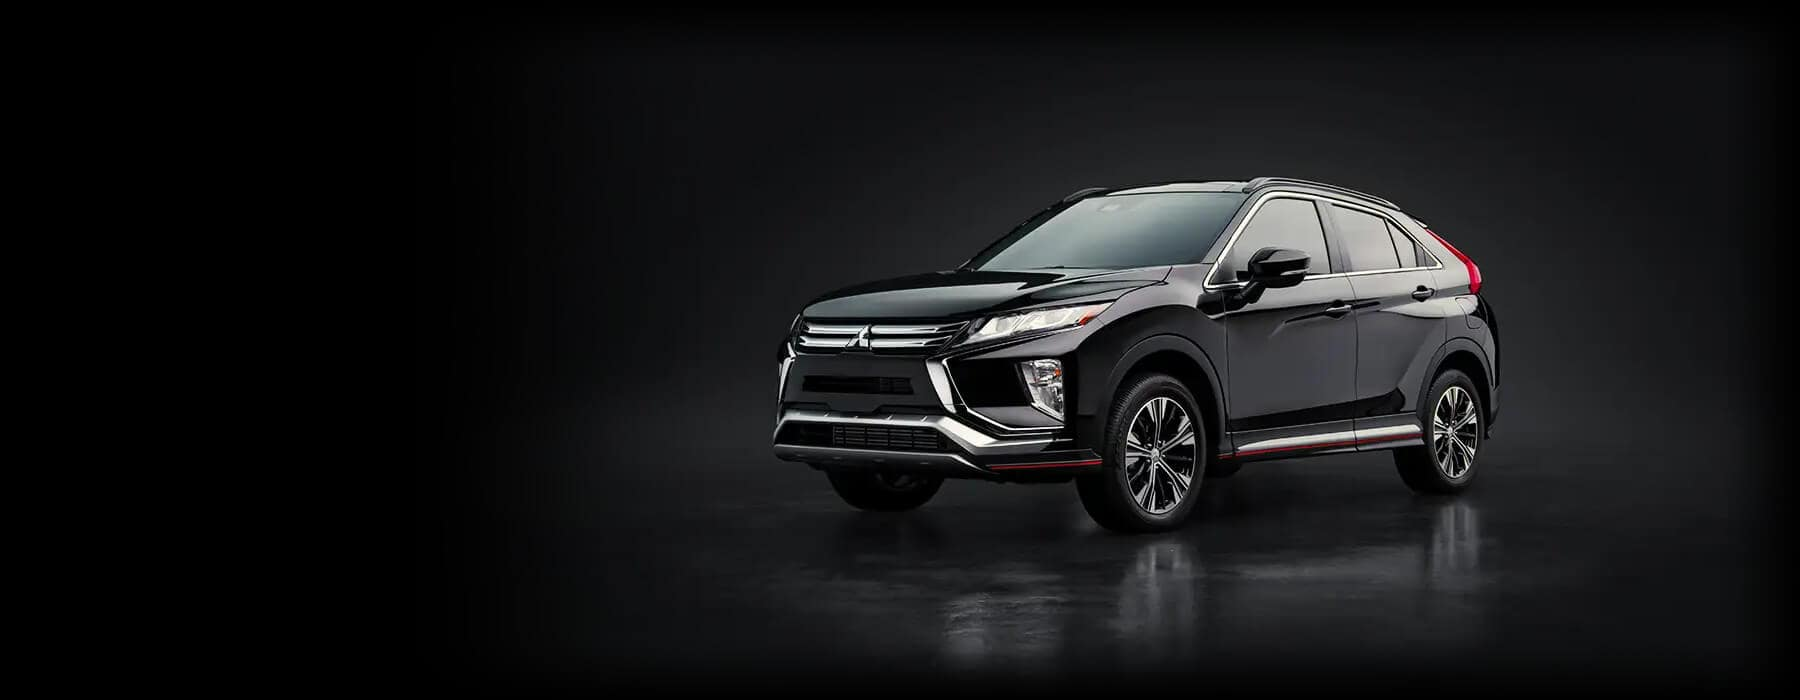 Mitsubishi Economical SUVs in Sioux Falls Slider